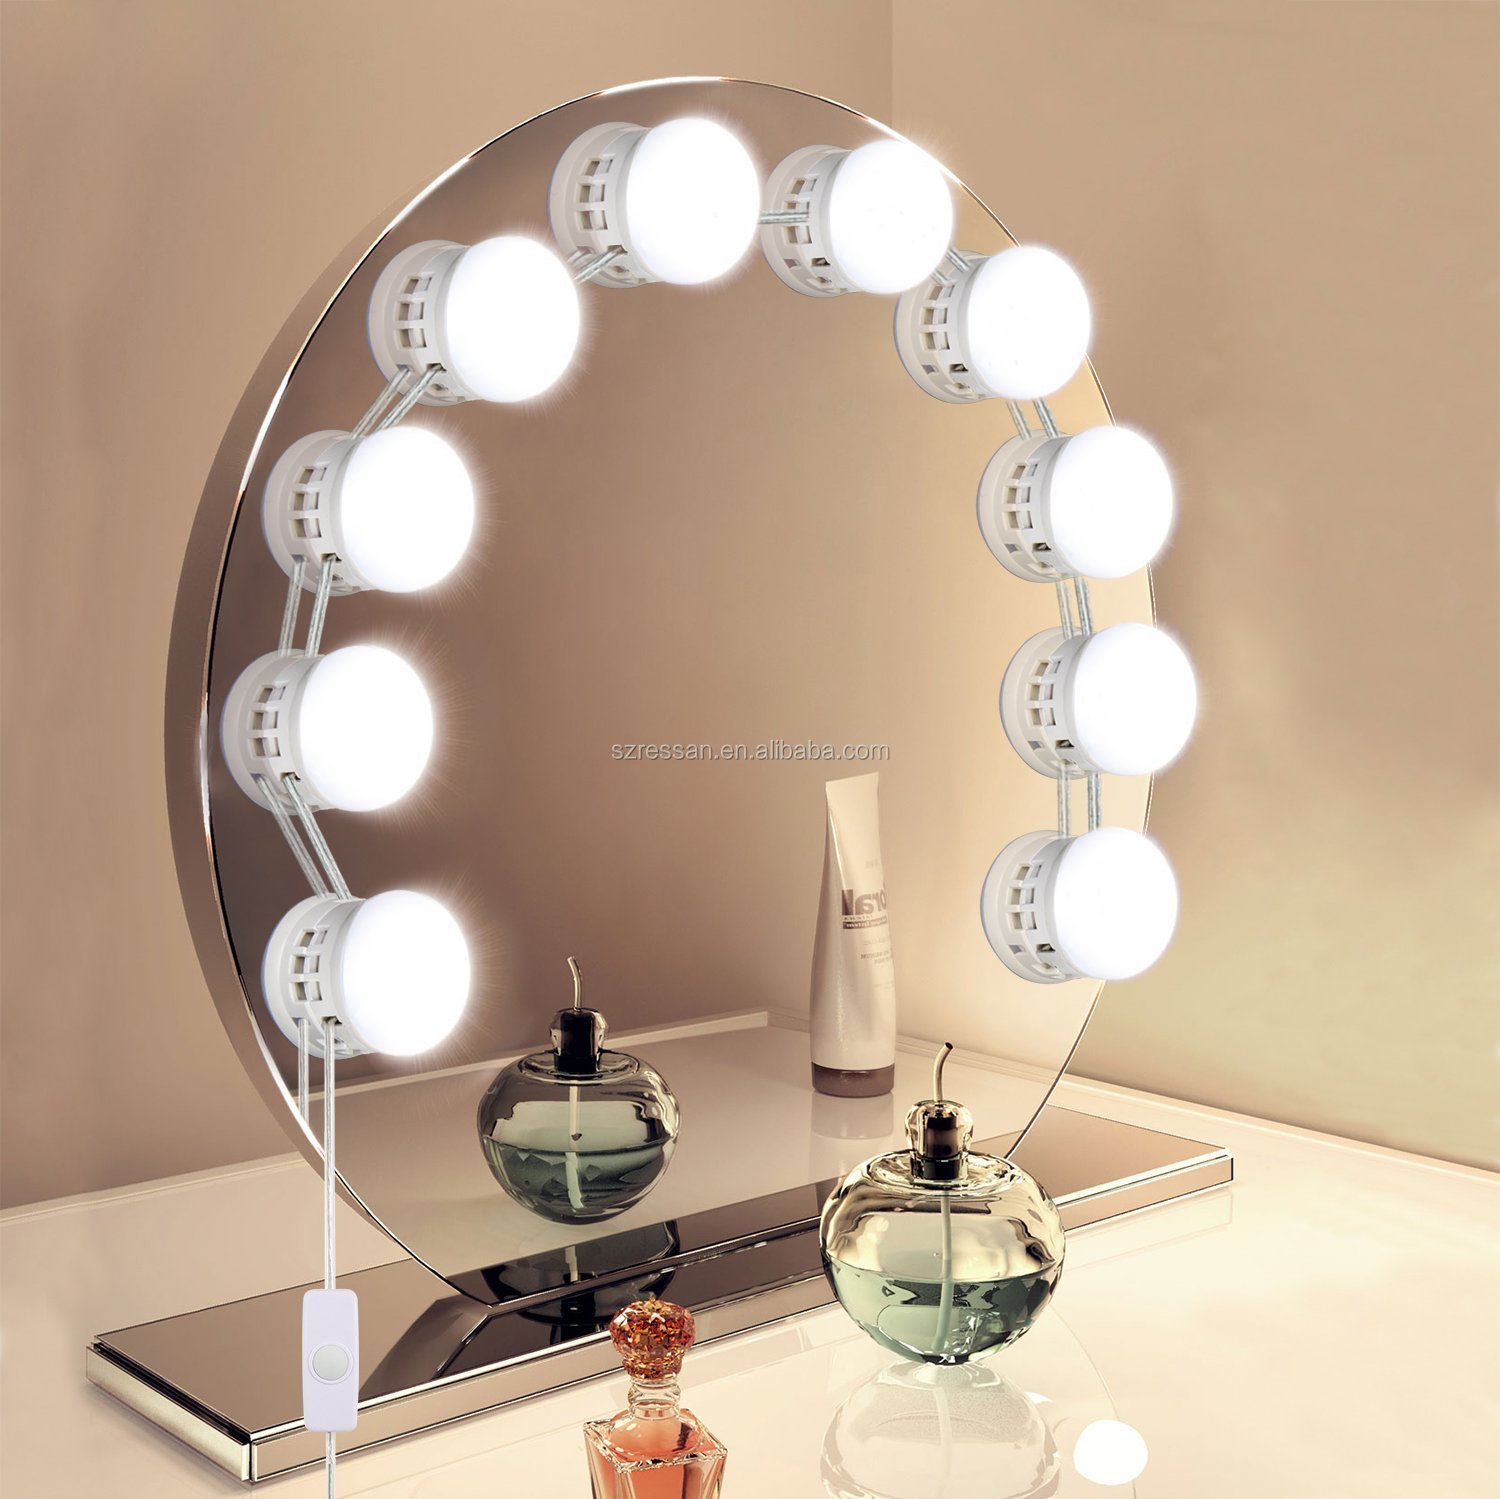 2018 Hollywood Style LED Vanity Mirror Lights Kit for Makeup Dressing Table Vanity Set Mirrors